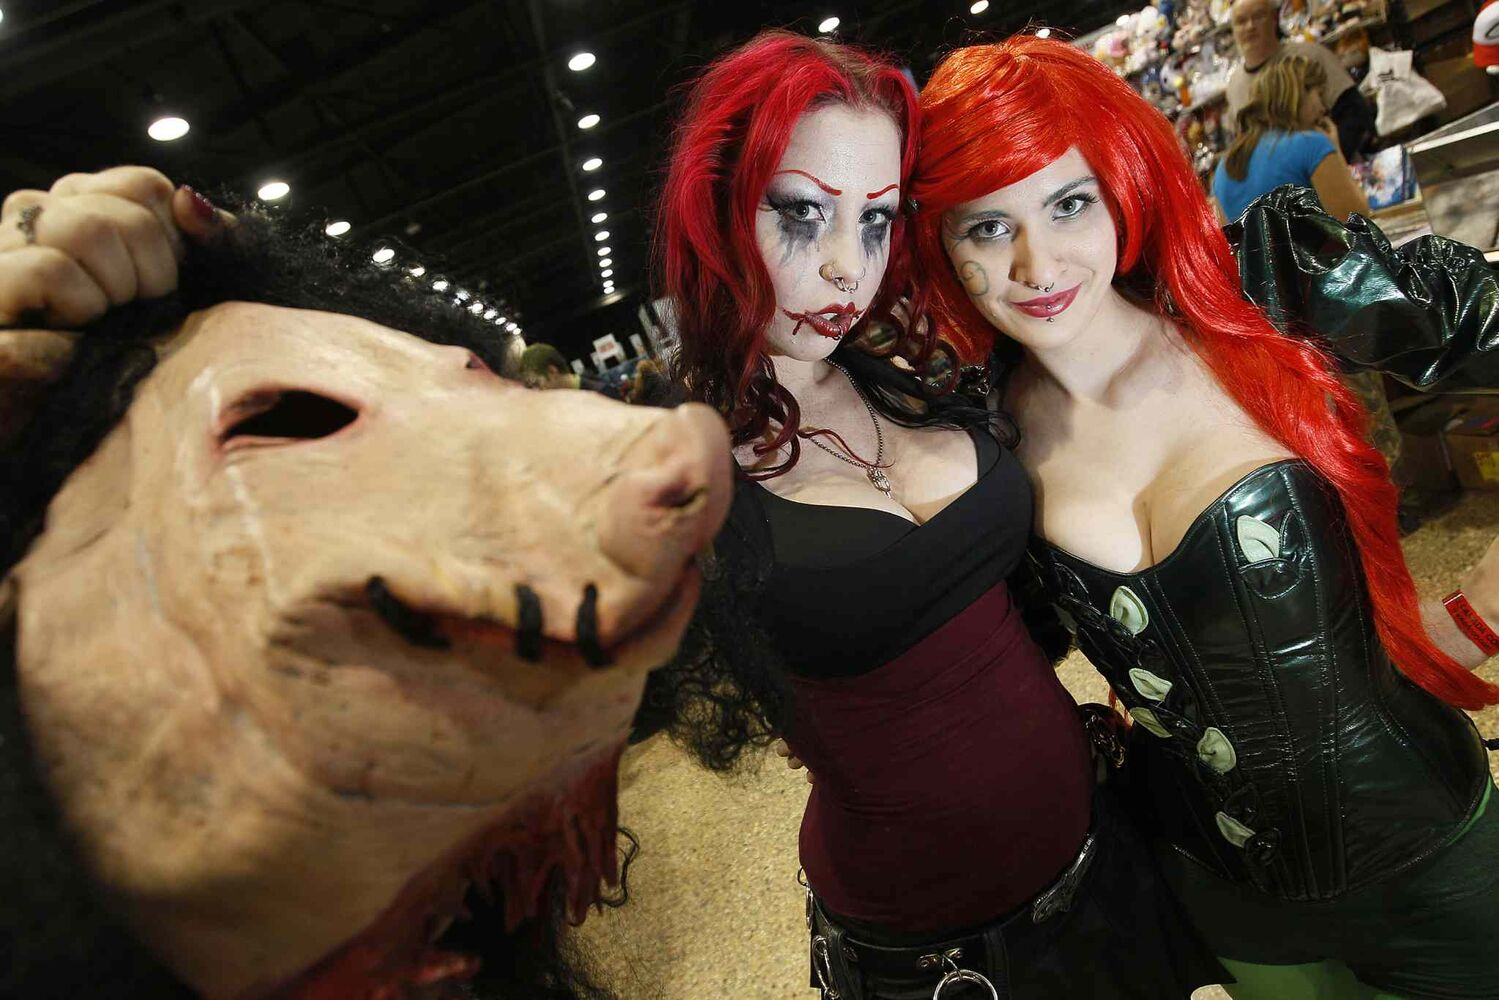 Brie Yaworski (right) dressed as Poison Ivy from the Batman franchise, while Lylia Chorosive dressed as Amanda Young, Jigsaw Killer's apprentice from the Saw franchise. (John Woods / Winnipeg Free Press)